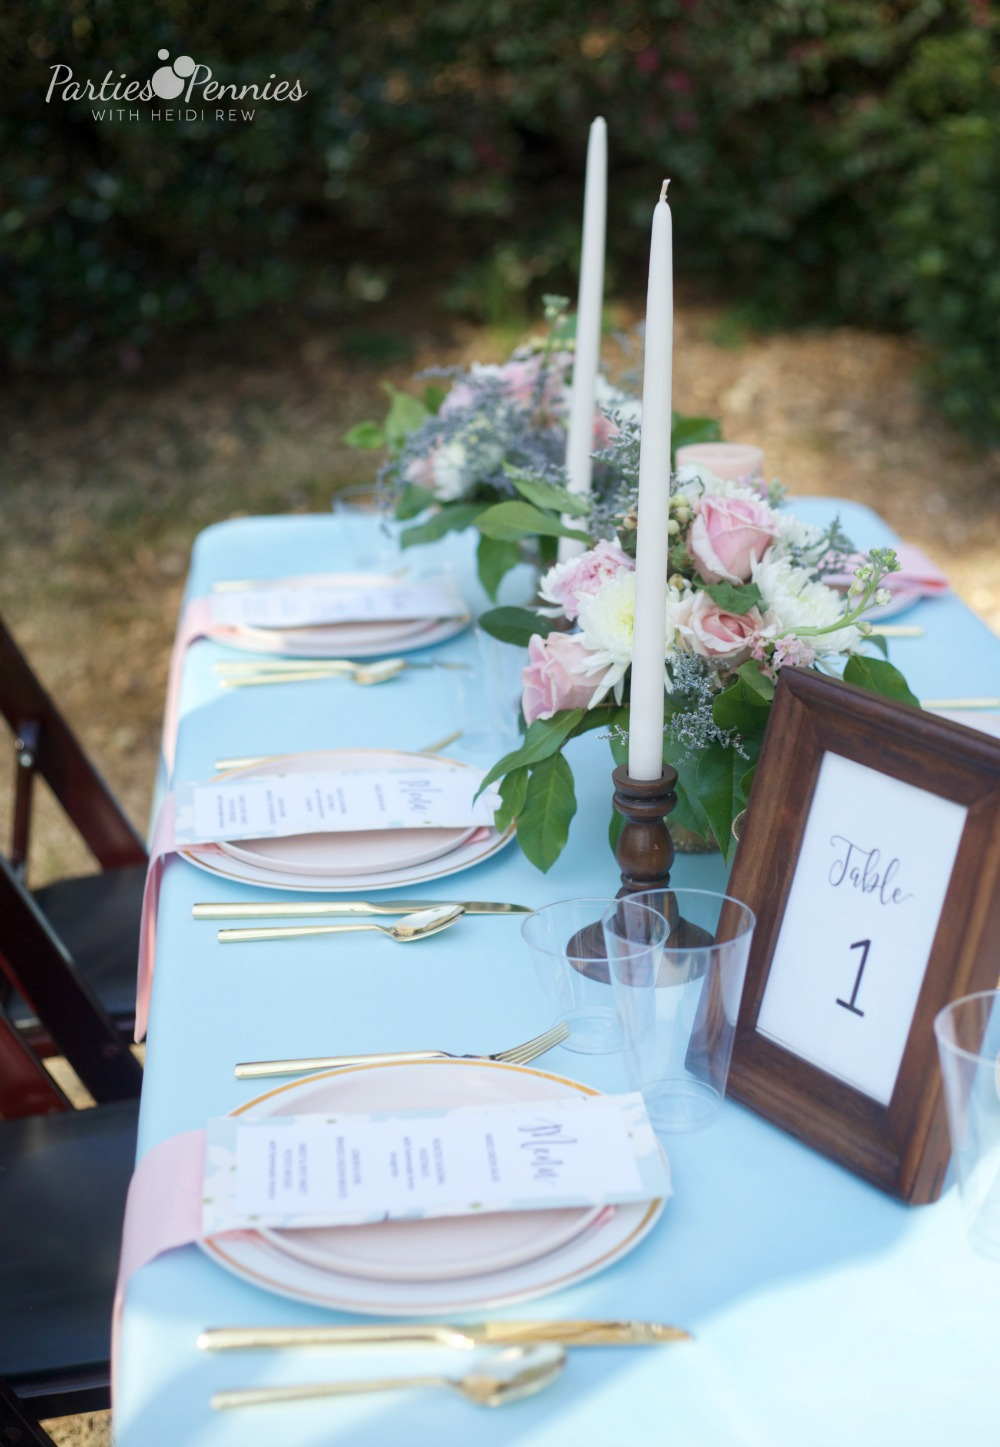 How to Plan a Wedding for under $5,000 | PartiesforPennies.com | Reception Table, Blue Tablecloth, Blue, Pink, Floral Arrangement